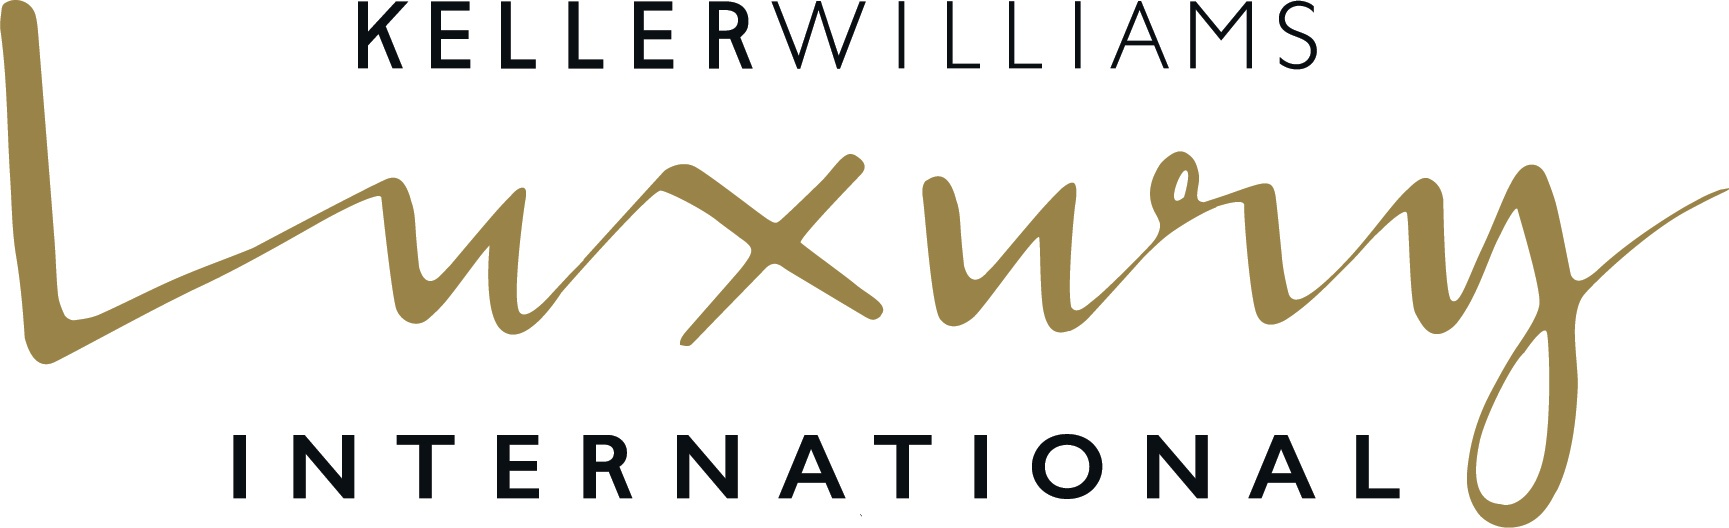 KW_LuxuryInternational_Logo_CMYK_Gold-K